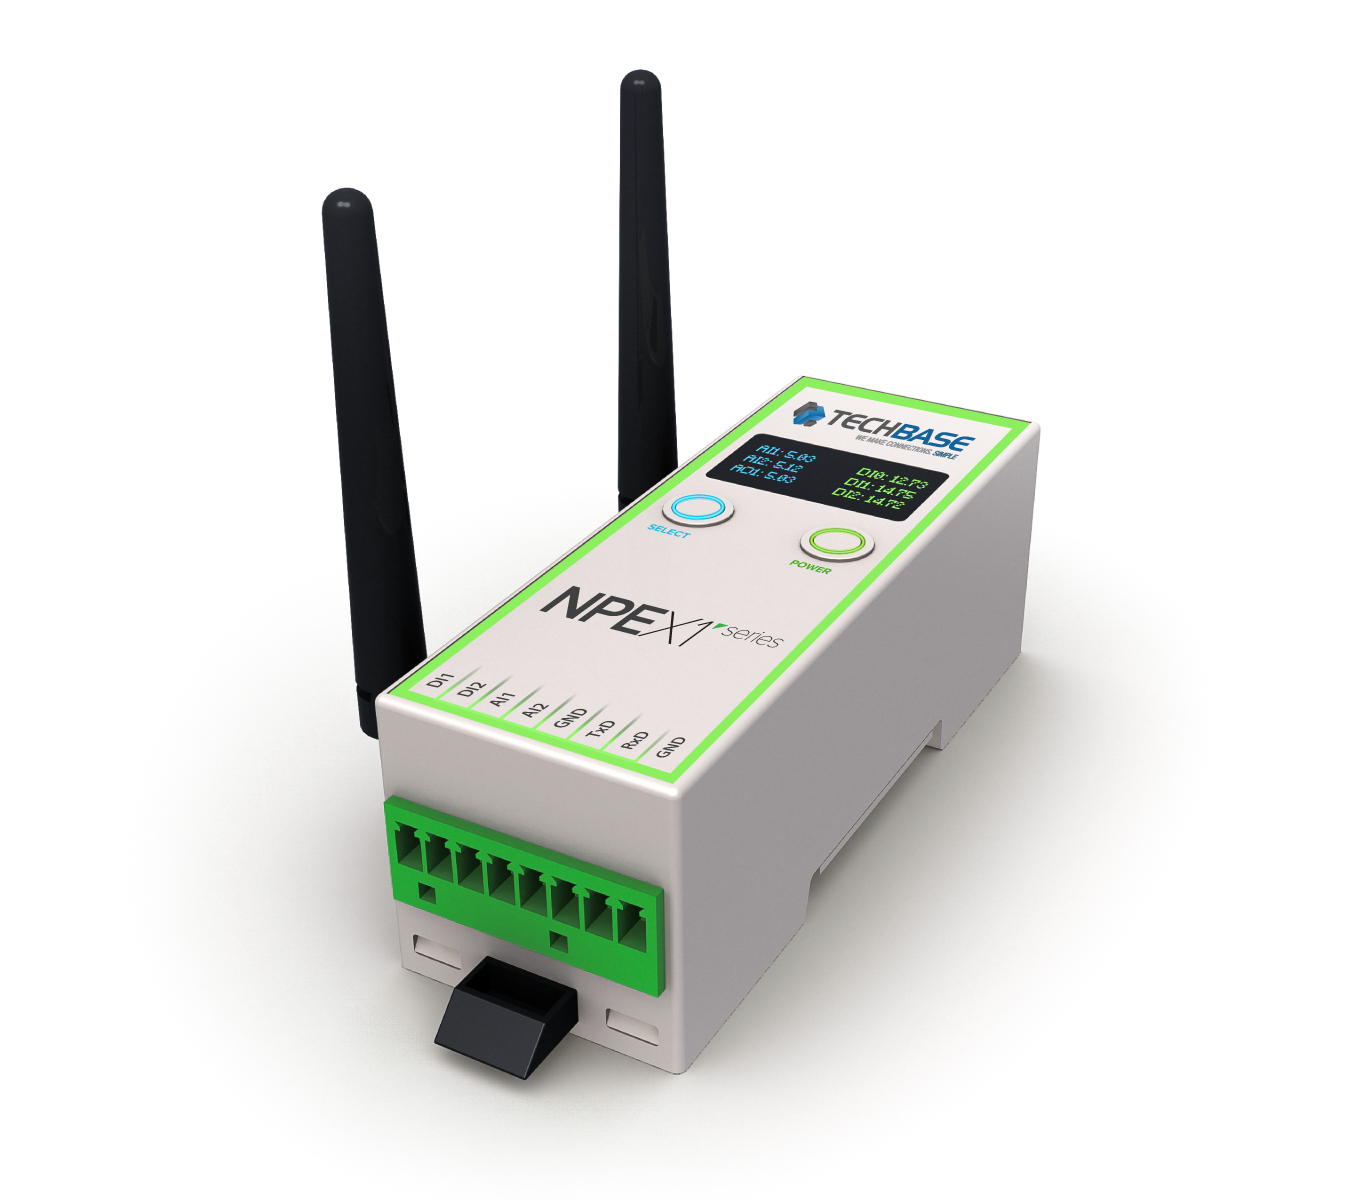 Npe x1 industrial computer iot gateway dual core tensilica lx6 industrial computer iot gateway dual core tensilica lx6 240 mhz 512kb publicscrutiny Images